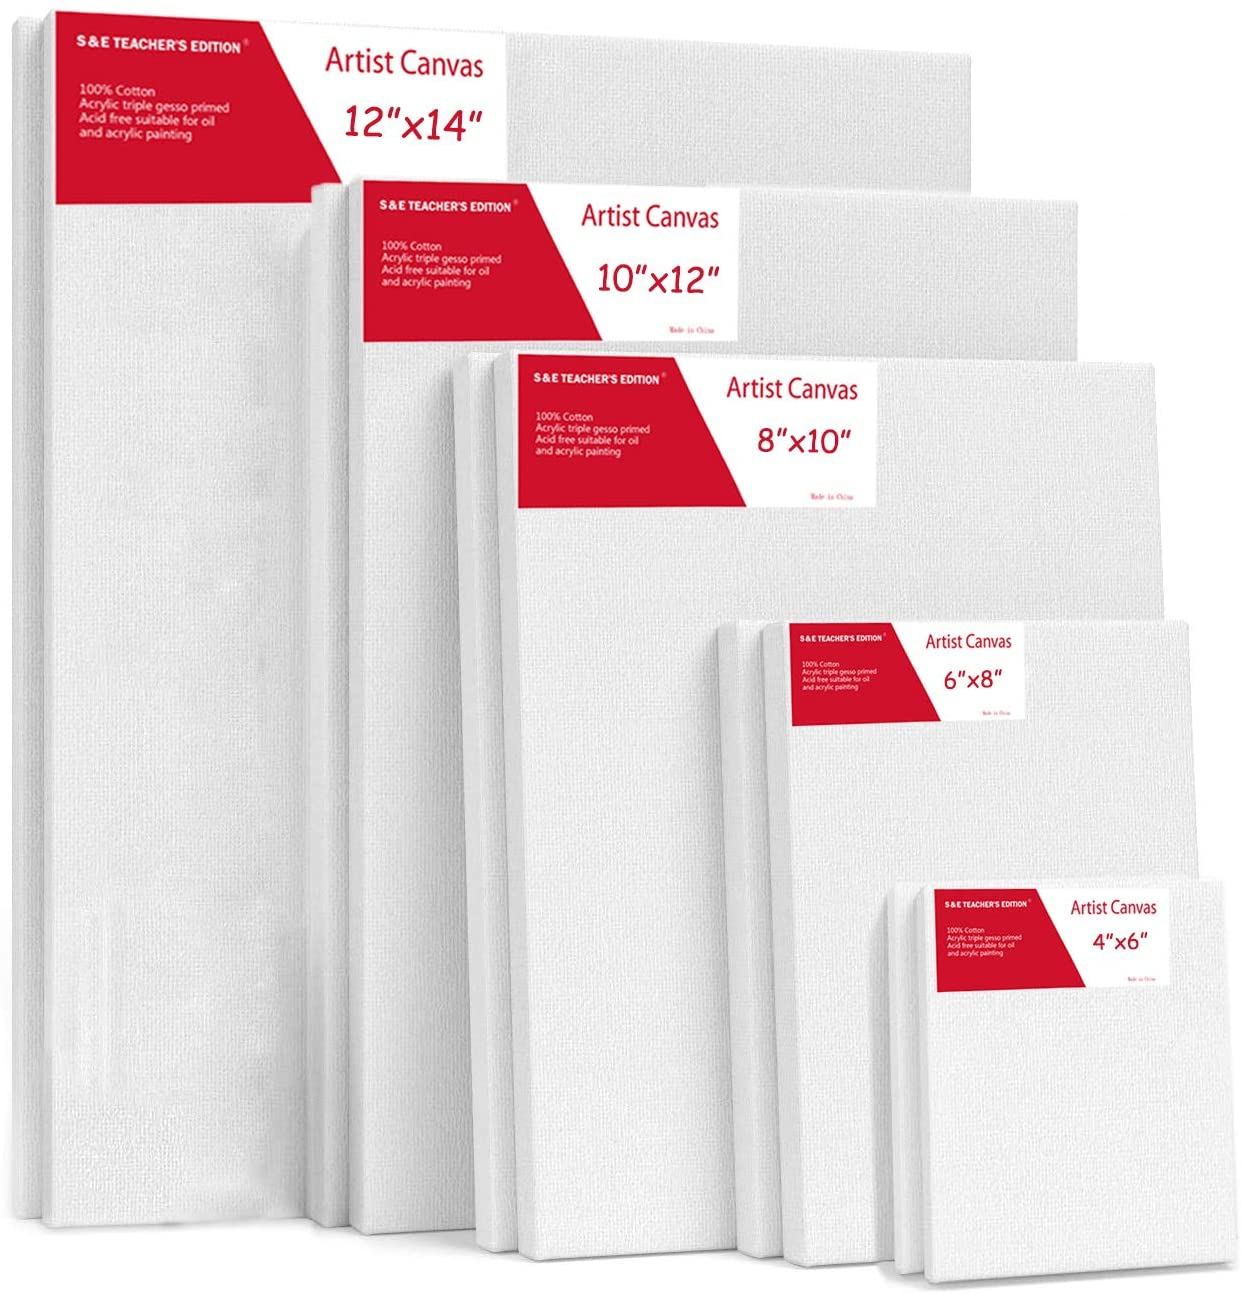 S & E TEACHER'S EDITION 10 Pcs Stretched White Blank Canvas, Multi Size Pack, 4x6